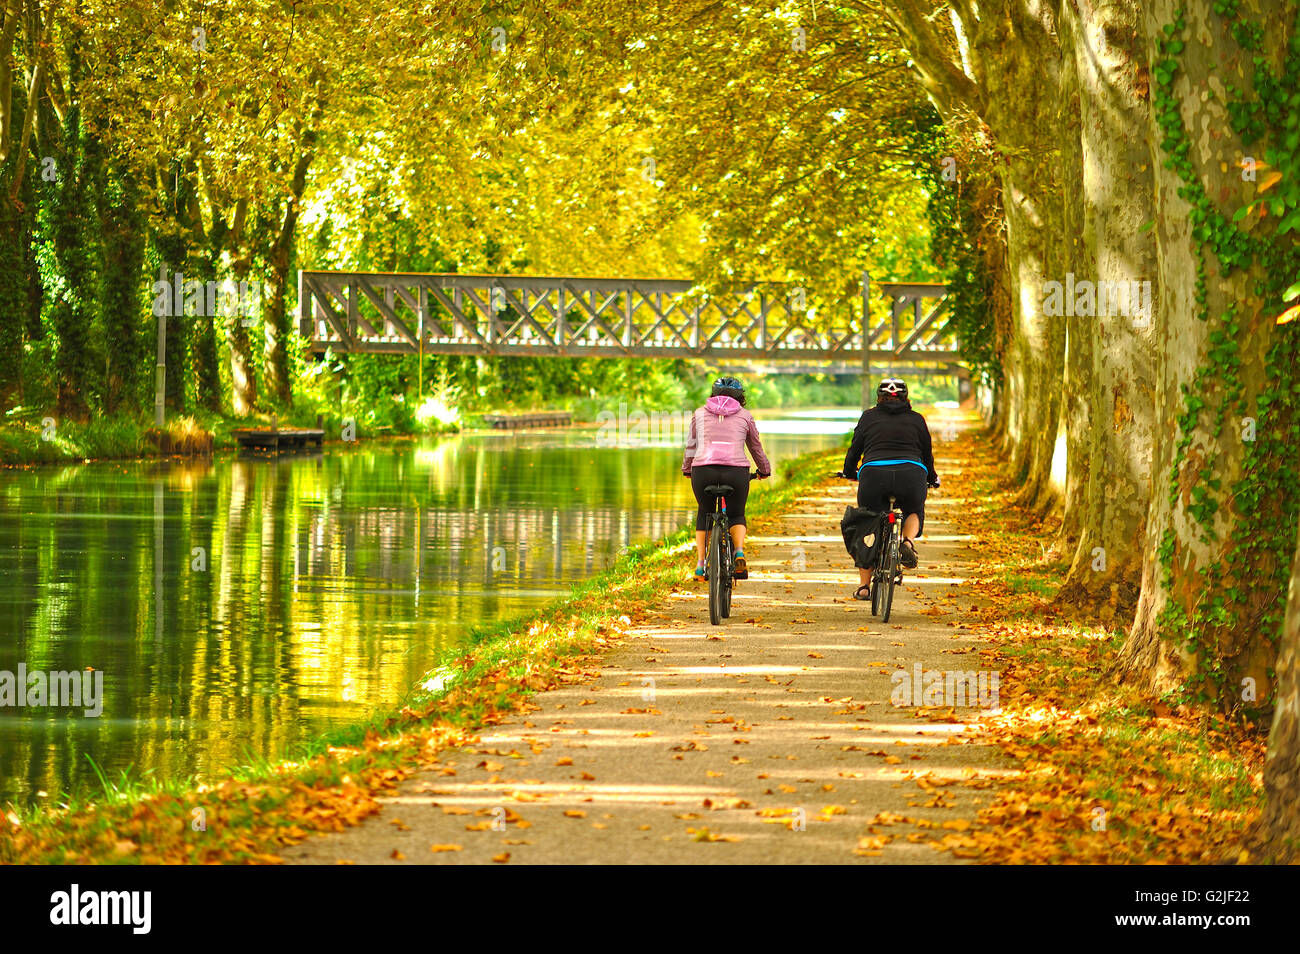 cyclists on the towpath beside the Canal de Garonne near Marmande, Lot-et-Garonne Department, Aquitaine, France - Stock Image